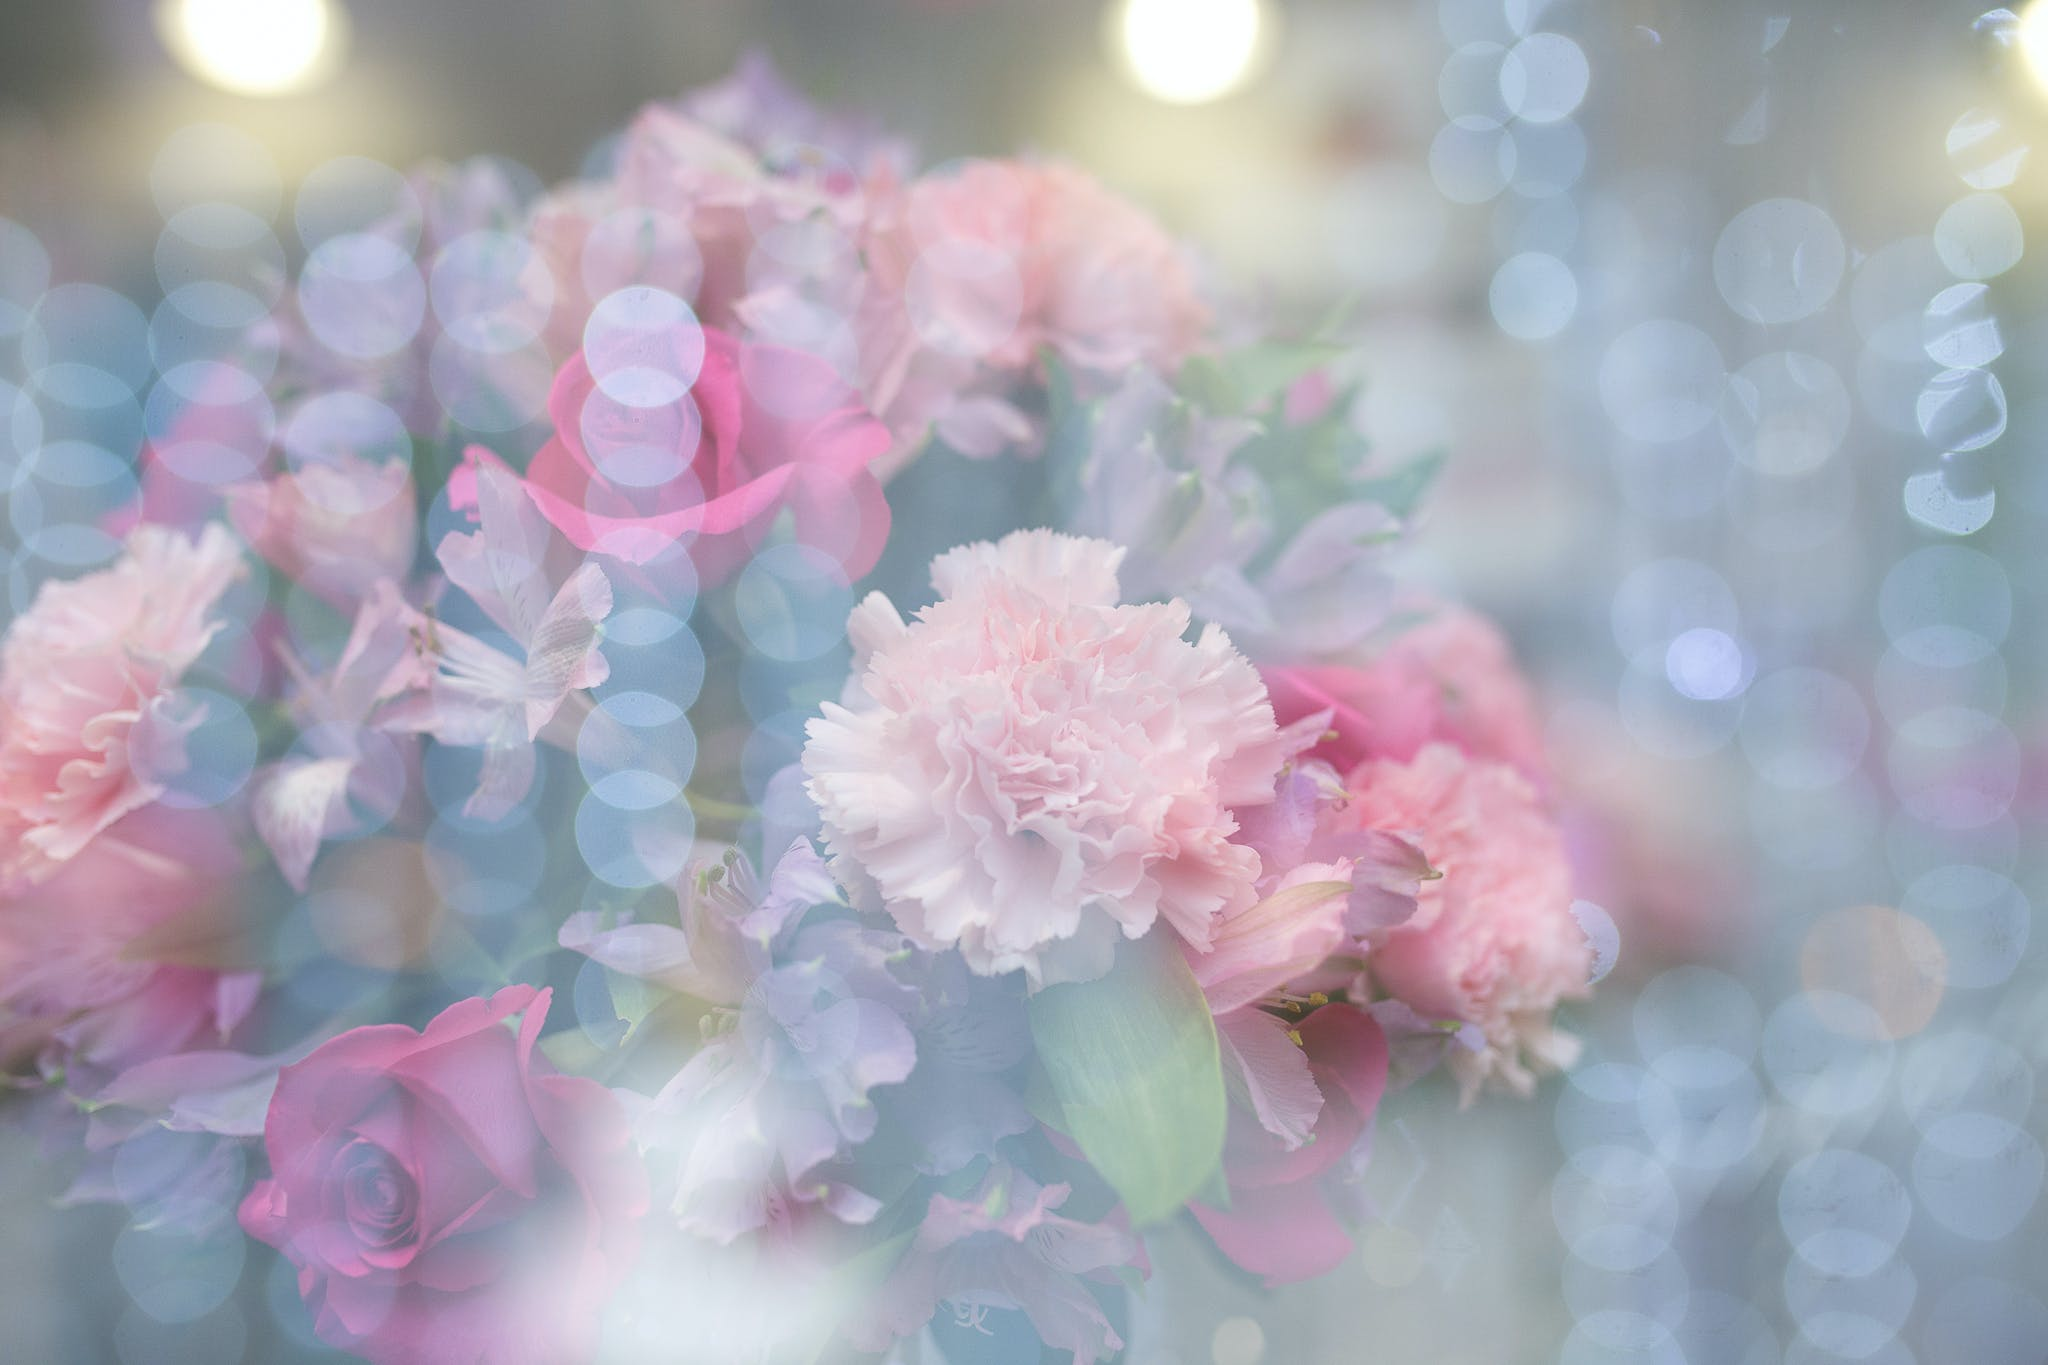 Free stock photo of lights, flowers, petals, blur